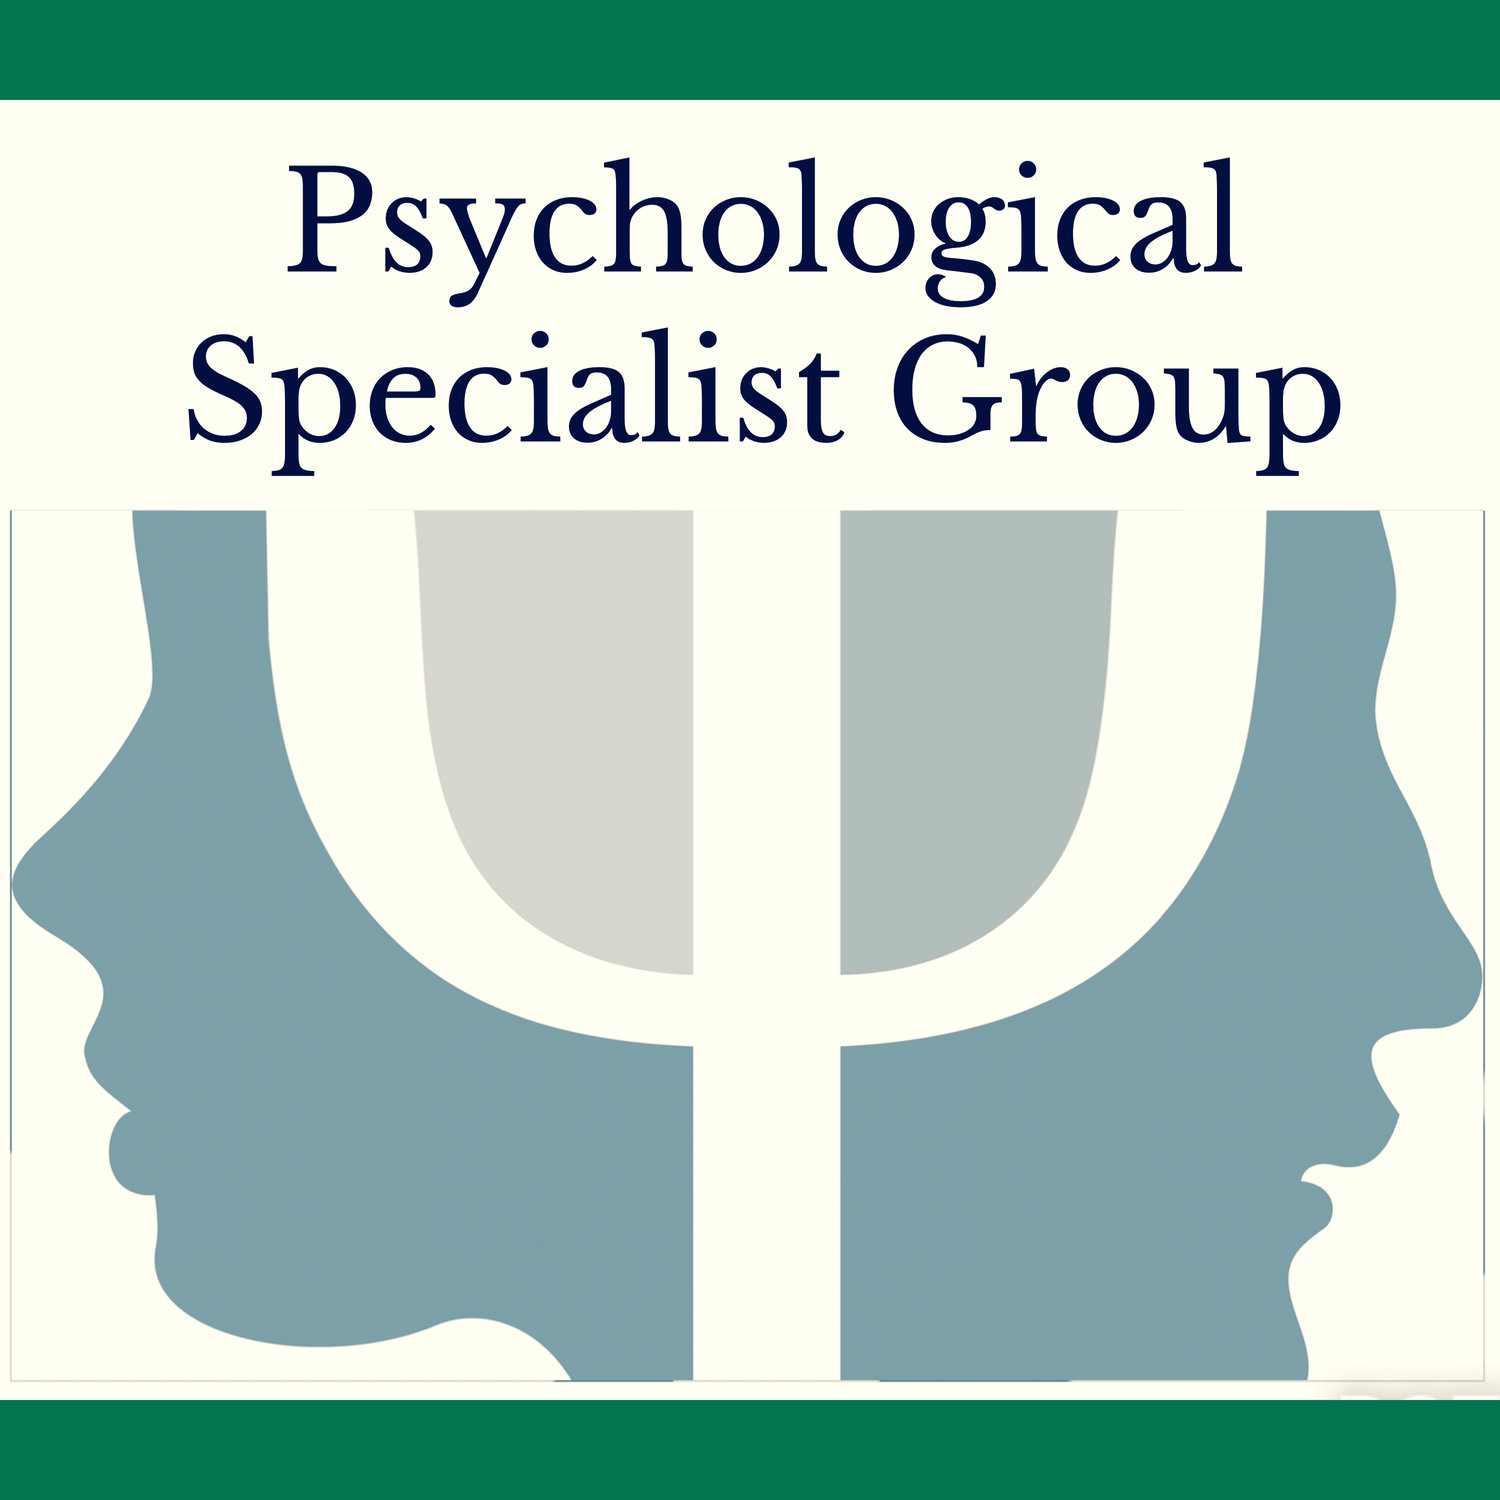 Psychological Specialist Group